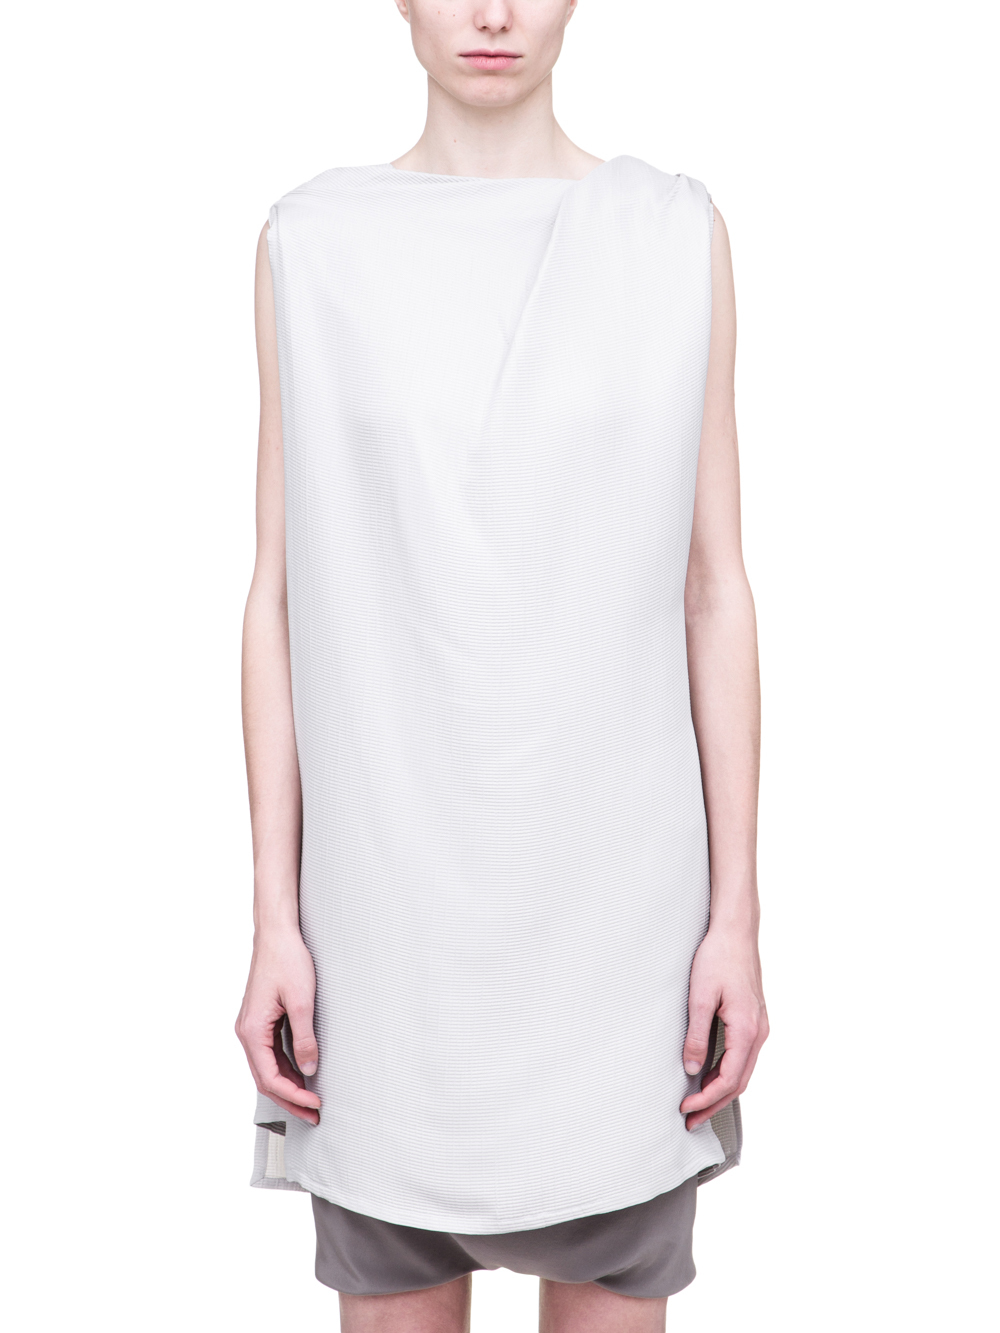 RICK OWENS SS19 BABEL TOGA TOP IN OYSTER LIGHT GREY SILK